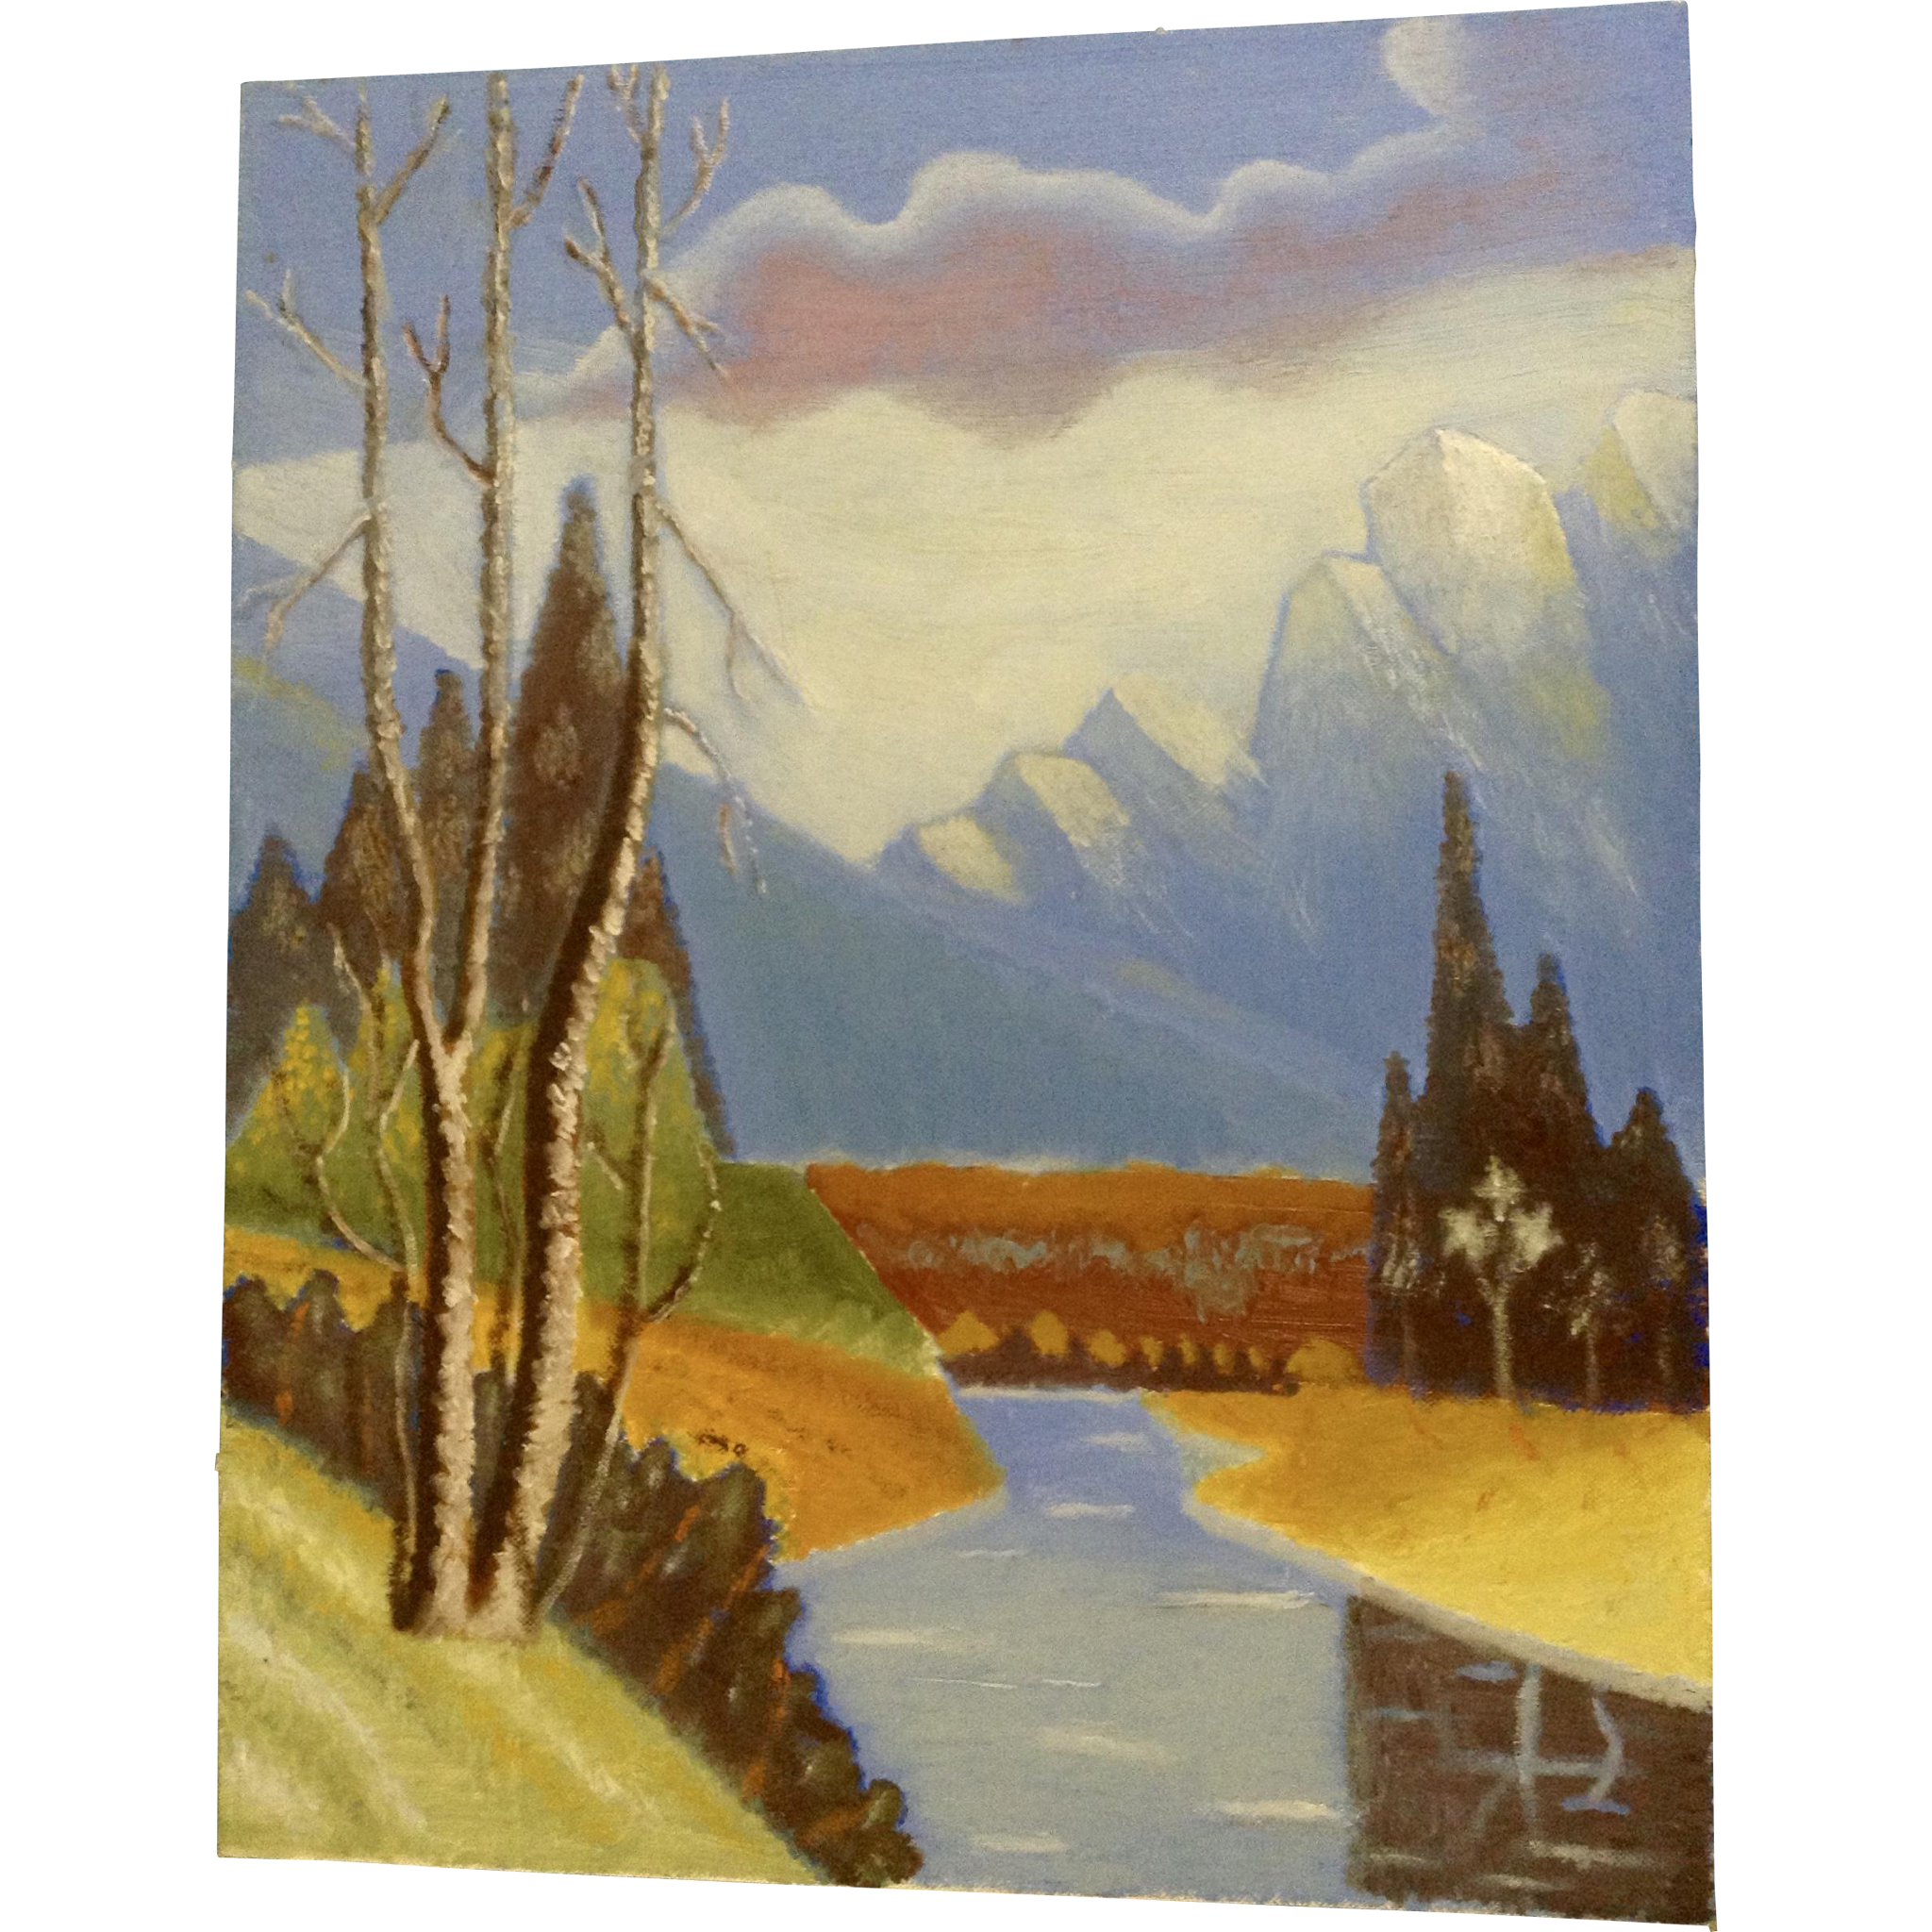 Watercolor artist in texas - Ernest G Lucas Oil Painting On Board Mount Rainier With River Signed By Texas Artist